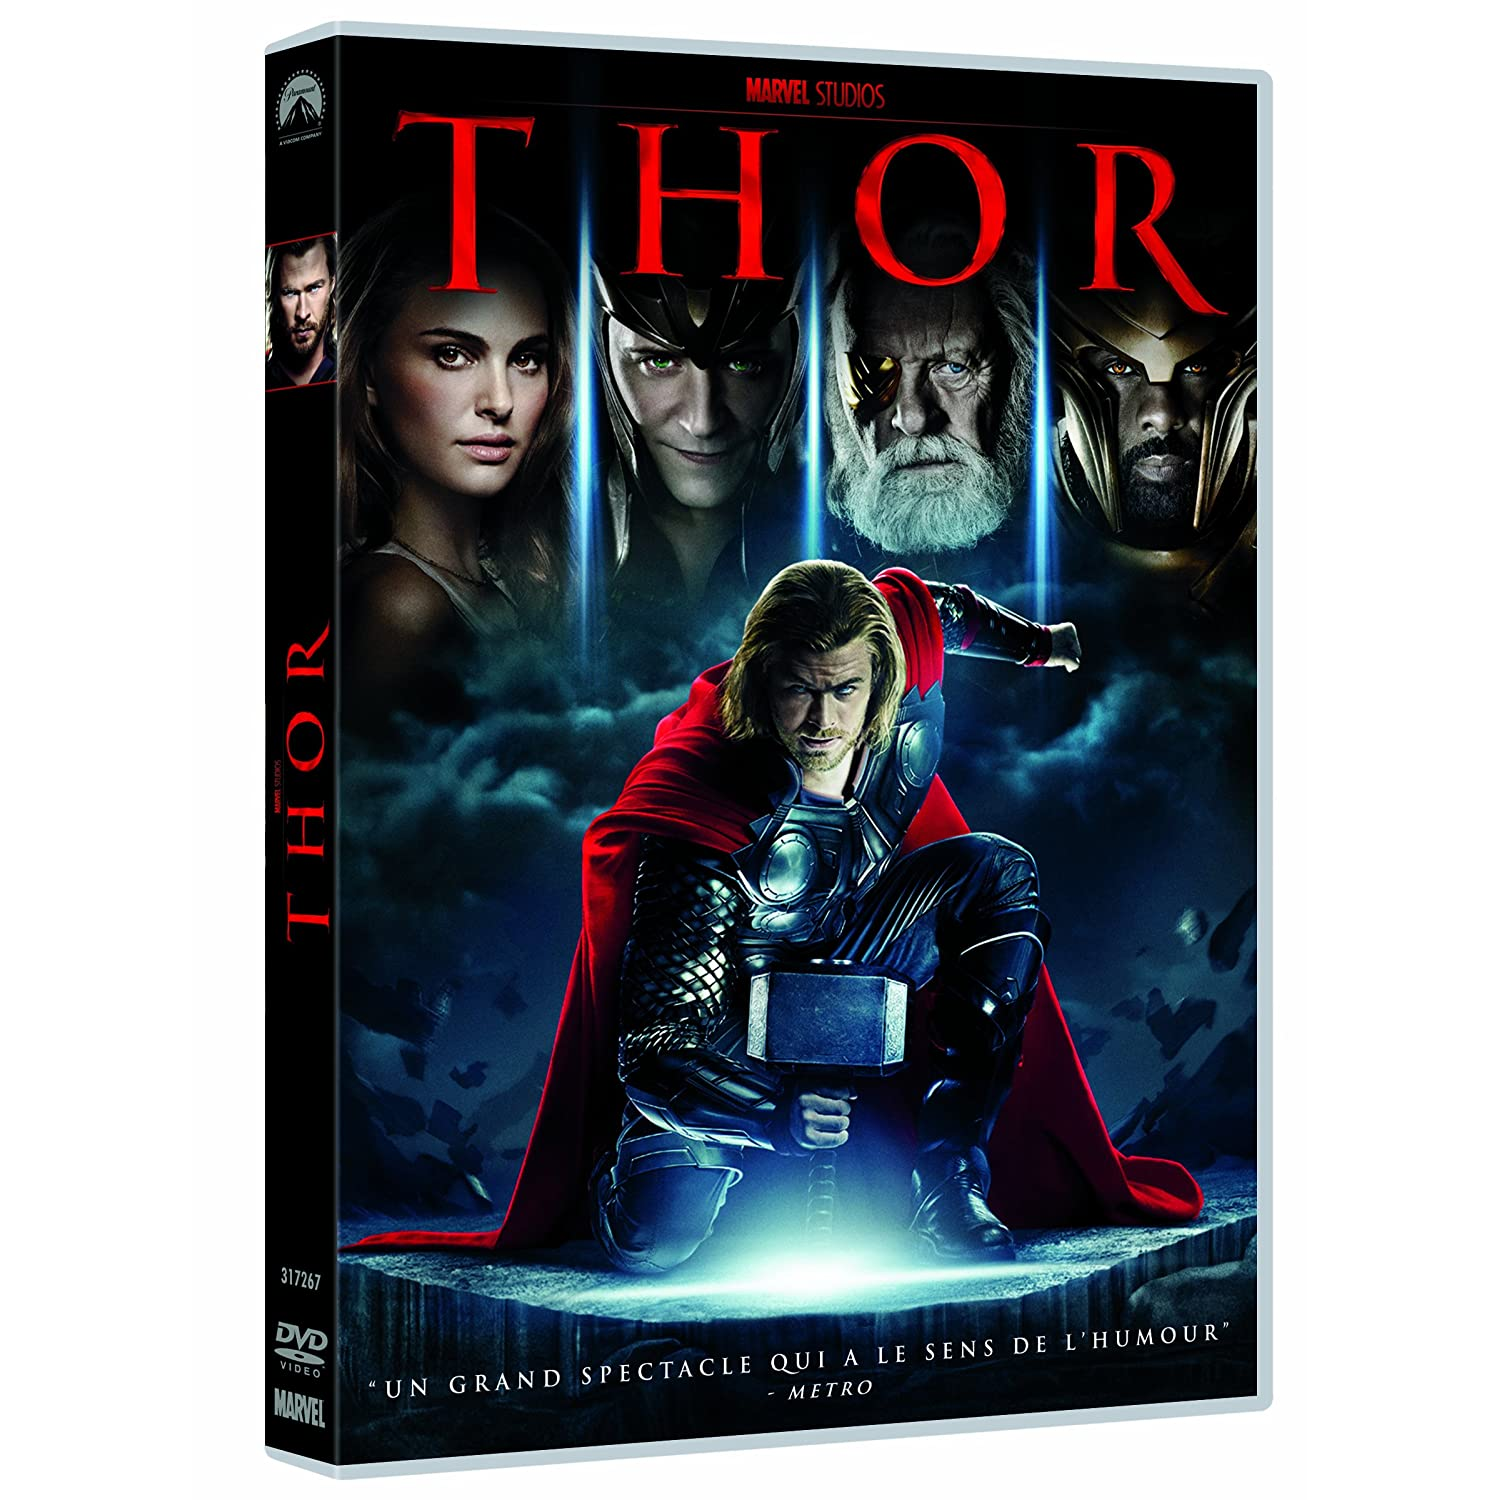 [MULTI] Thor (2011) [MULTILANGUE] [DVD-R]